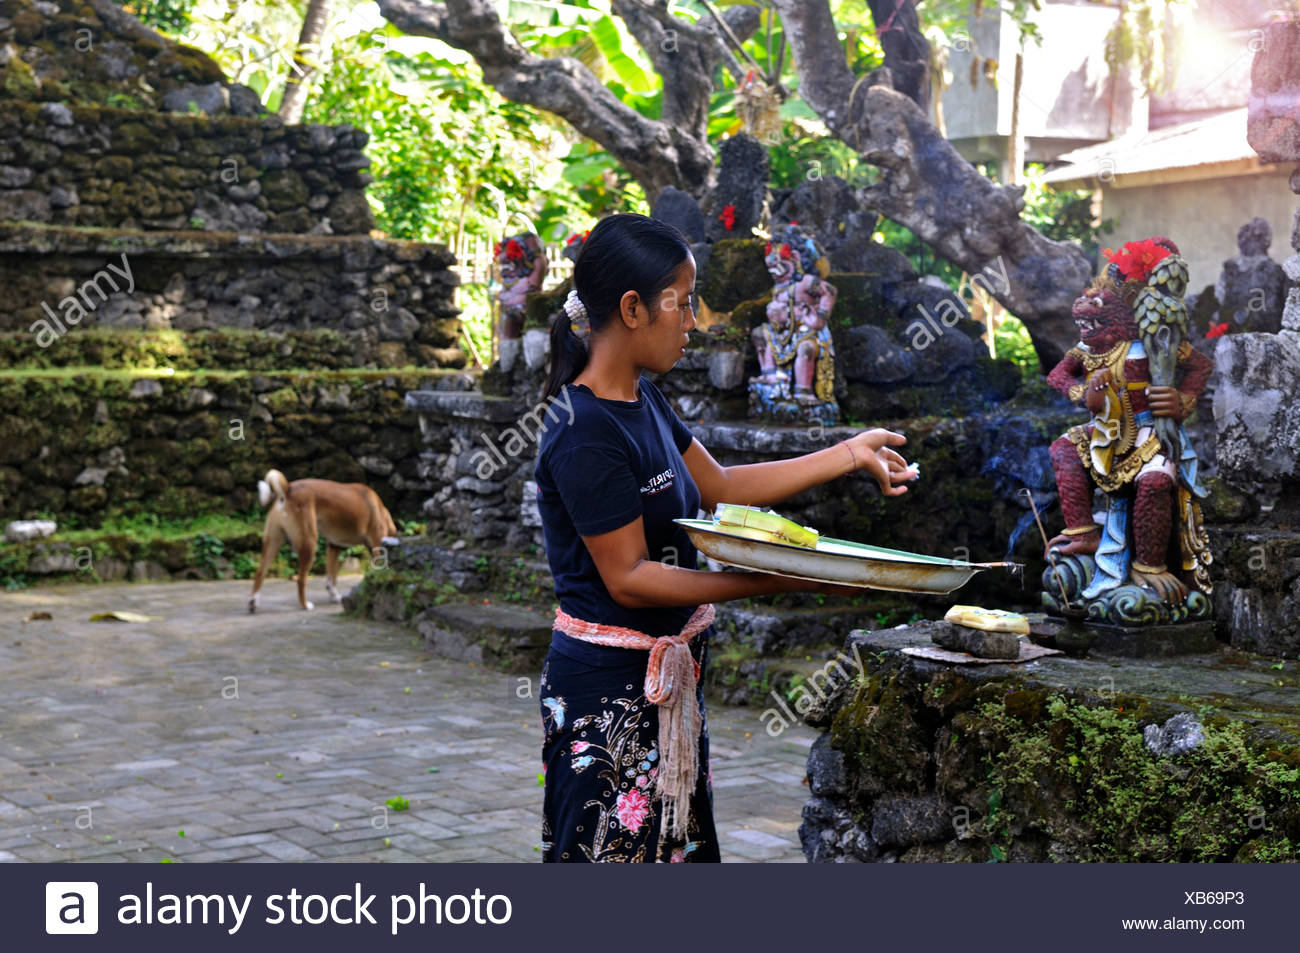 Offerings to the gods, Denpasar, Bali, Indonesia, Southeast Asia - Stock Image